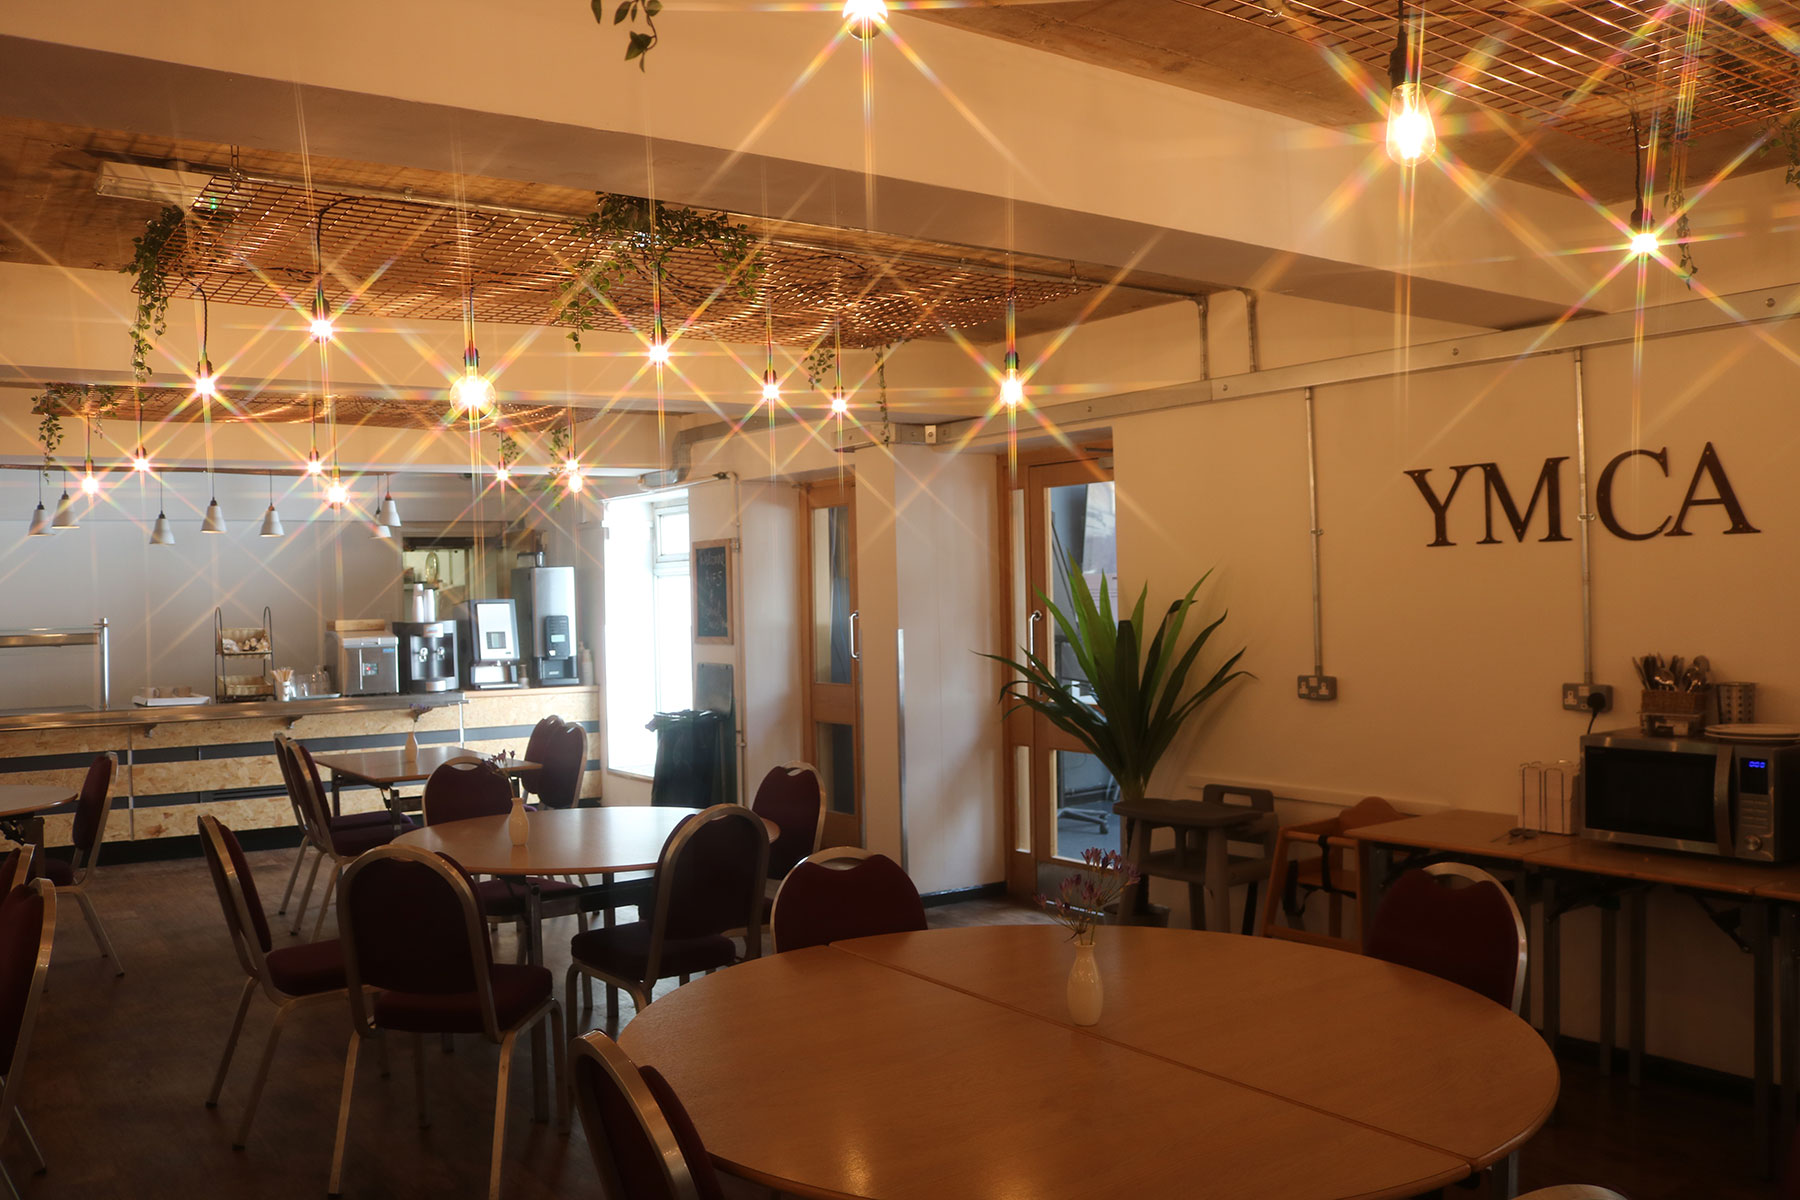 The Restaurant at the Bath YMCA